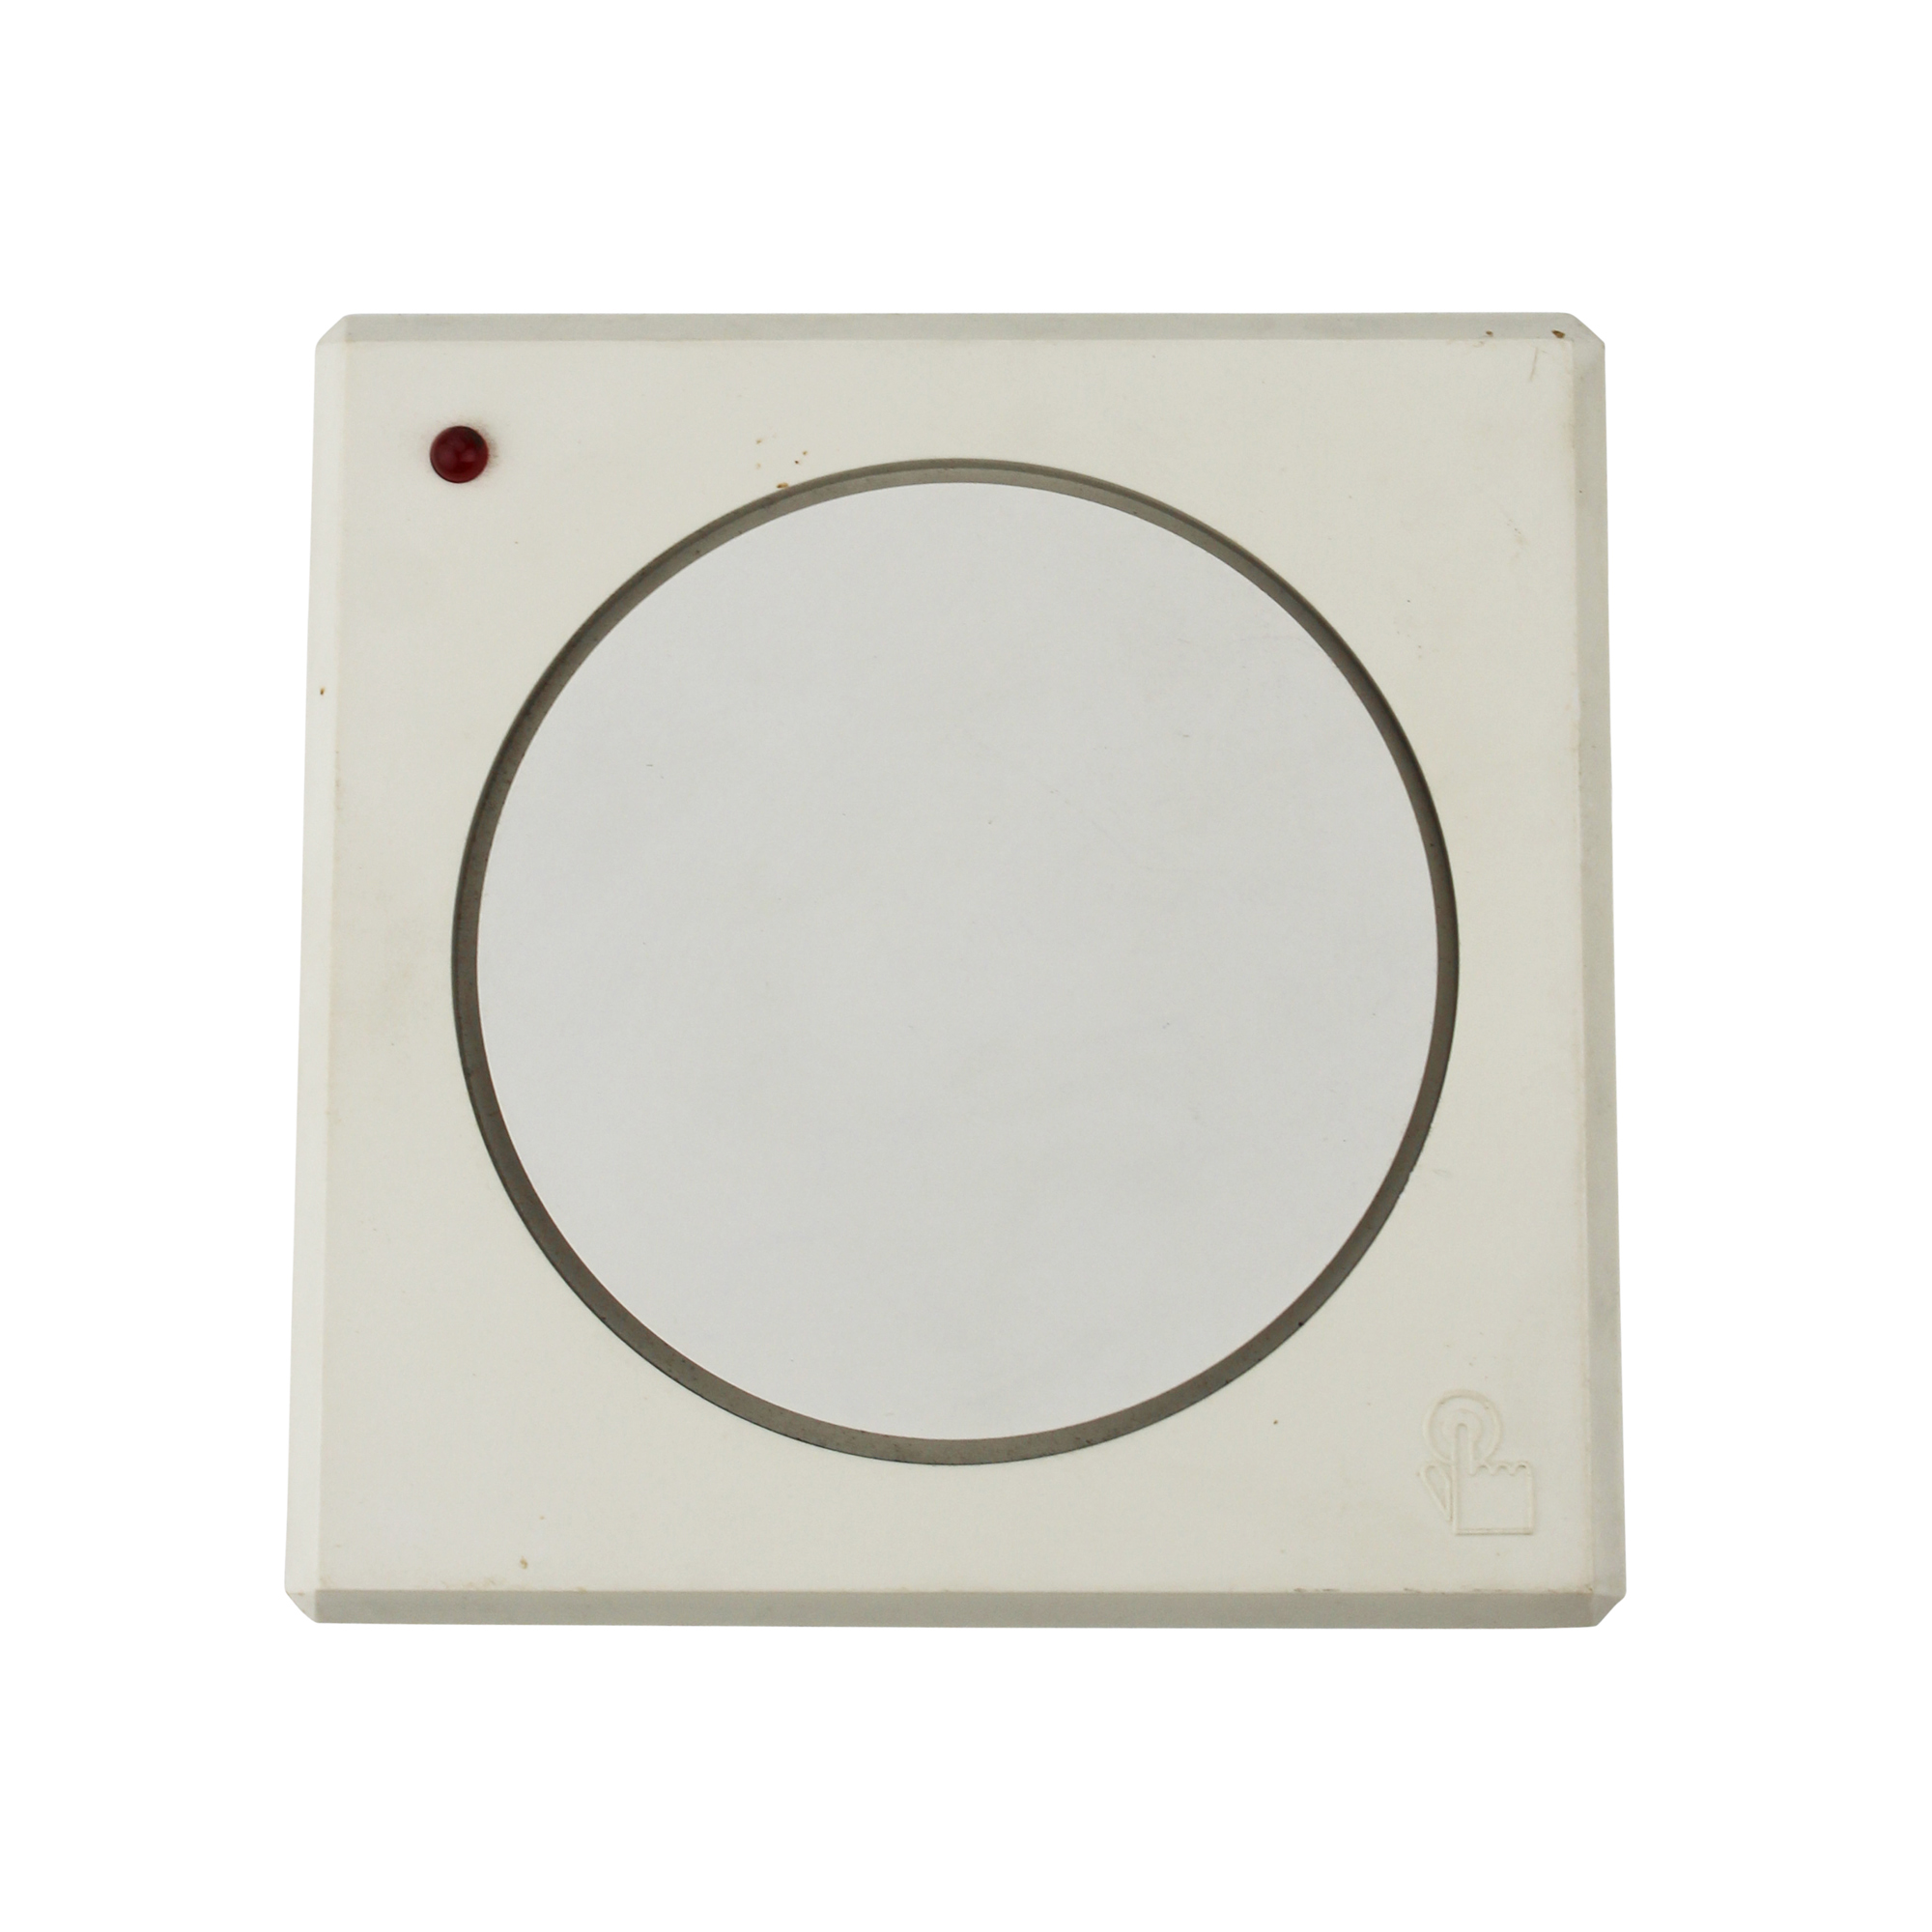 Wattstopper Occupancy Sensor Ceiling: WATT STOPPER W-1050A OCCUPANCY SENSOR, DUAL TECHNOLOGY